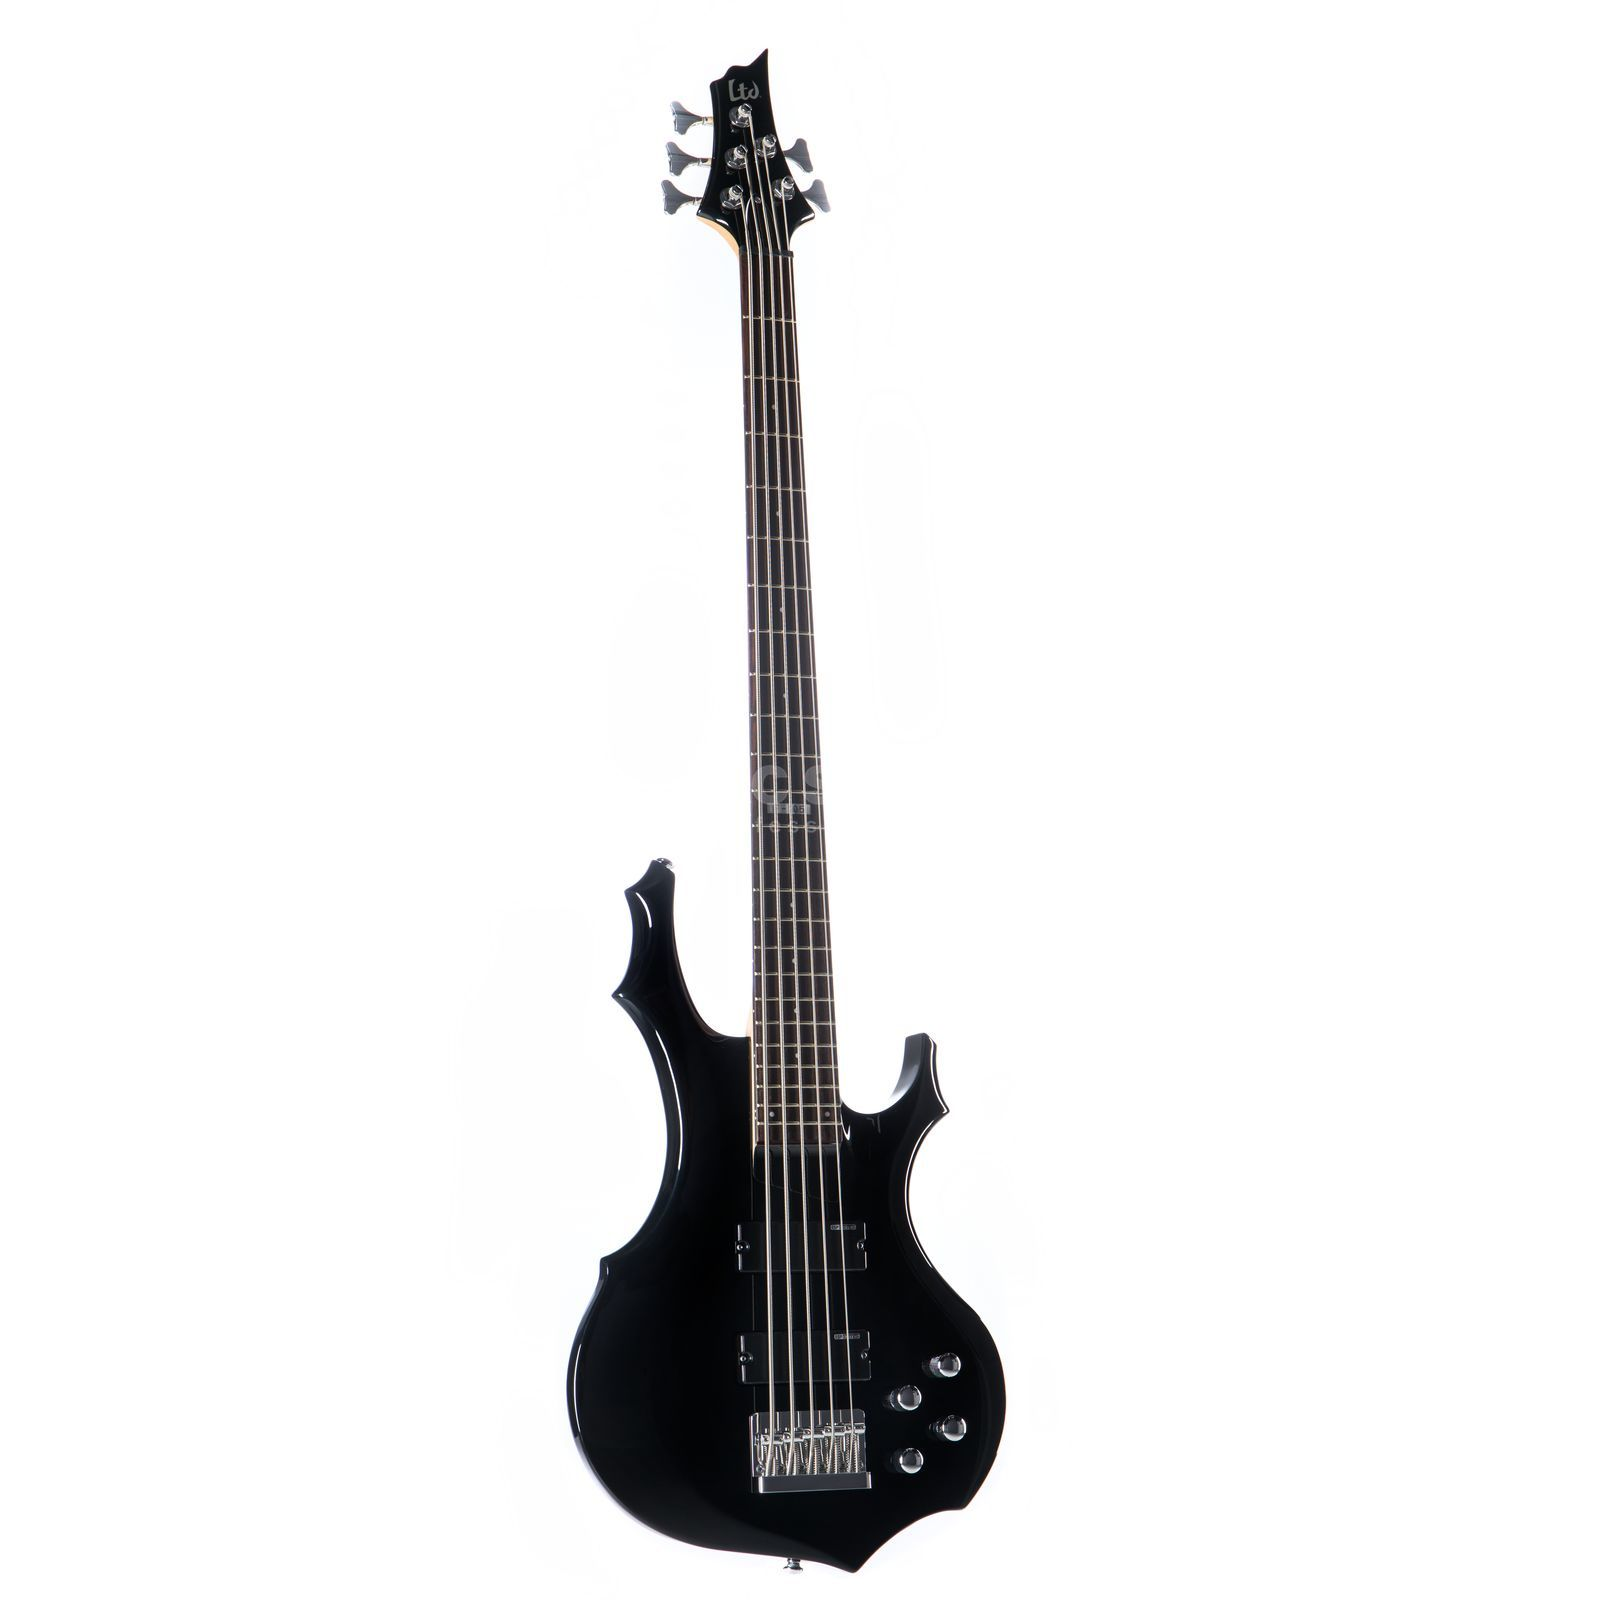 ESP LTD F-105 Bass Guitar, Black    Изображение товара